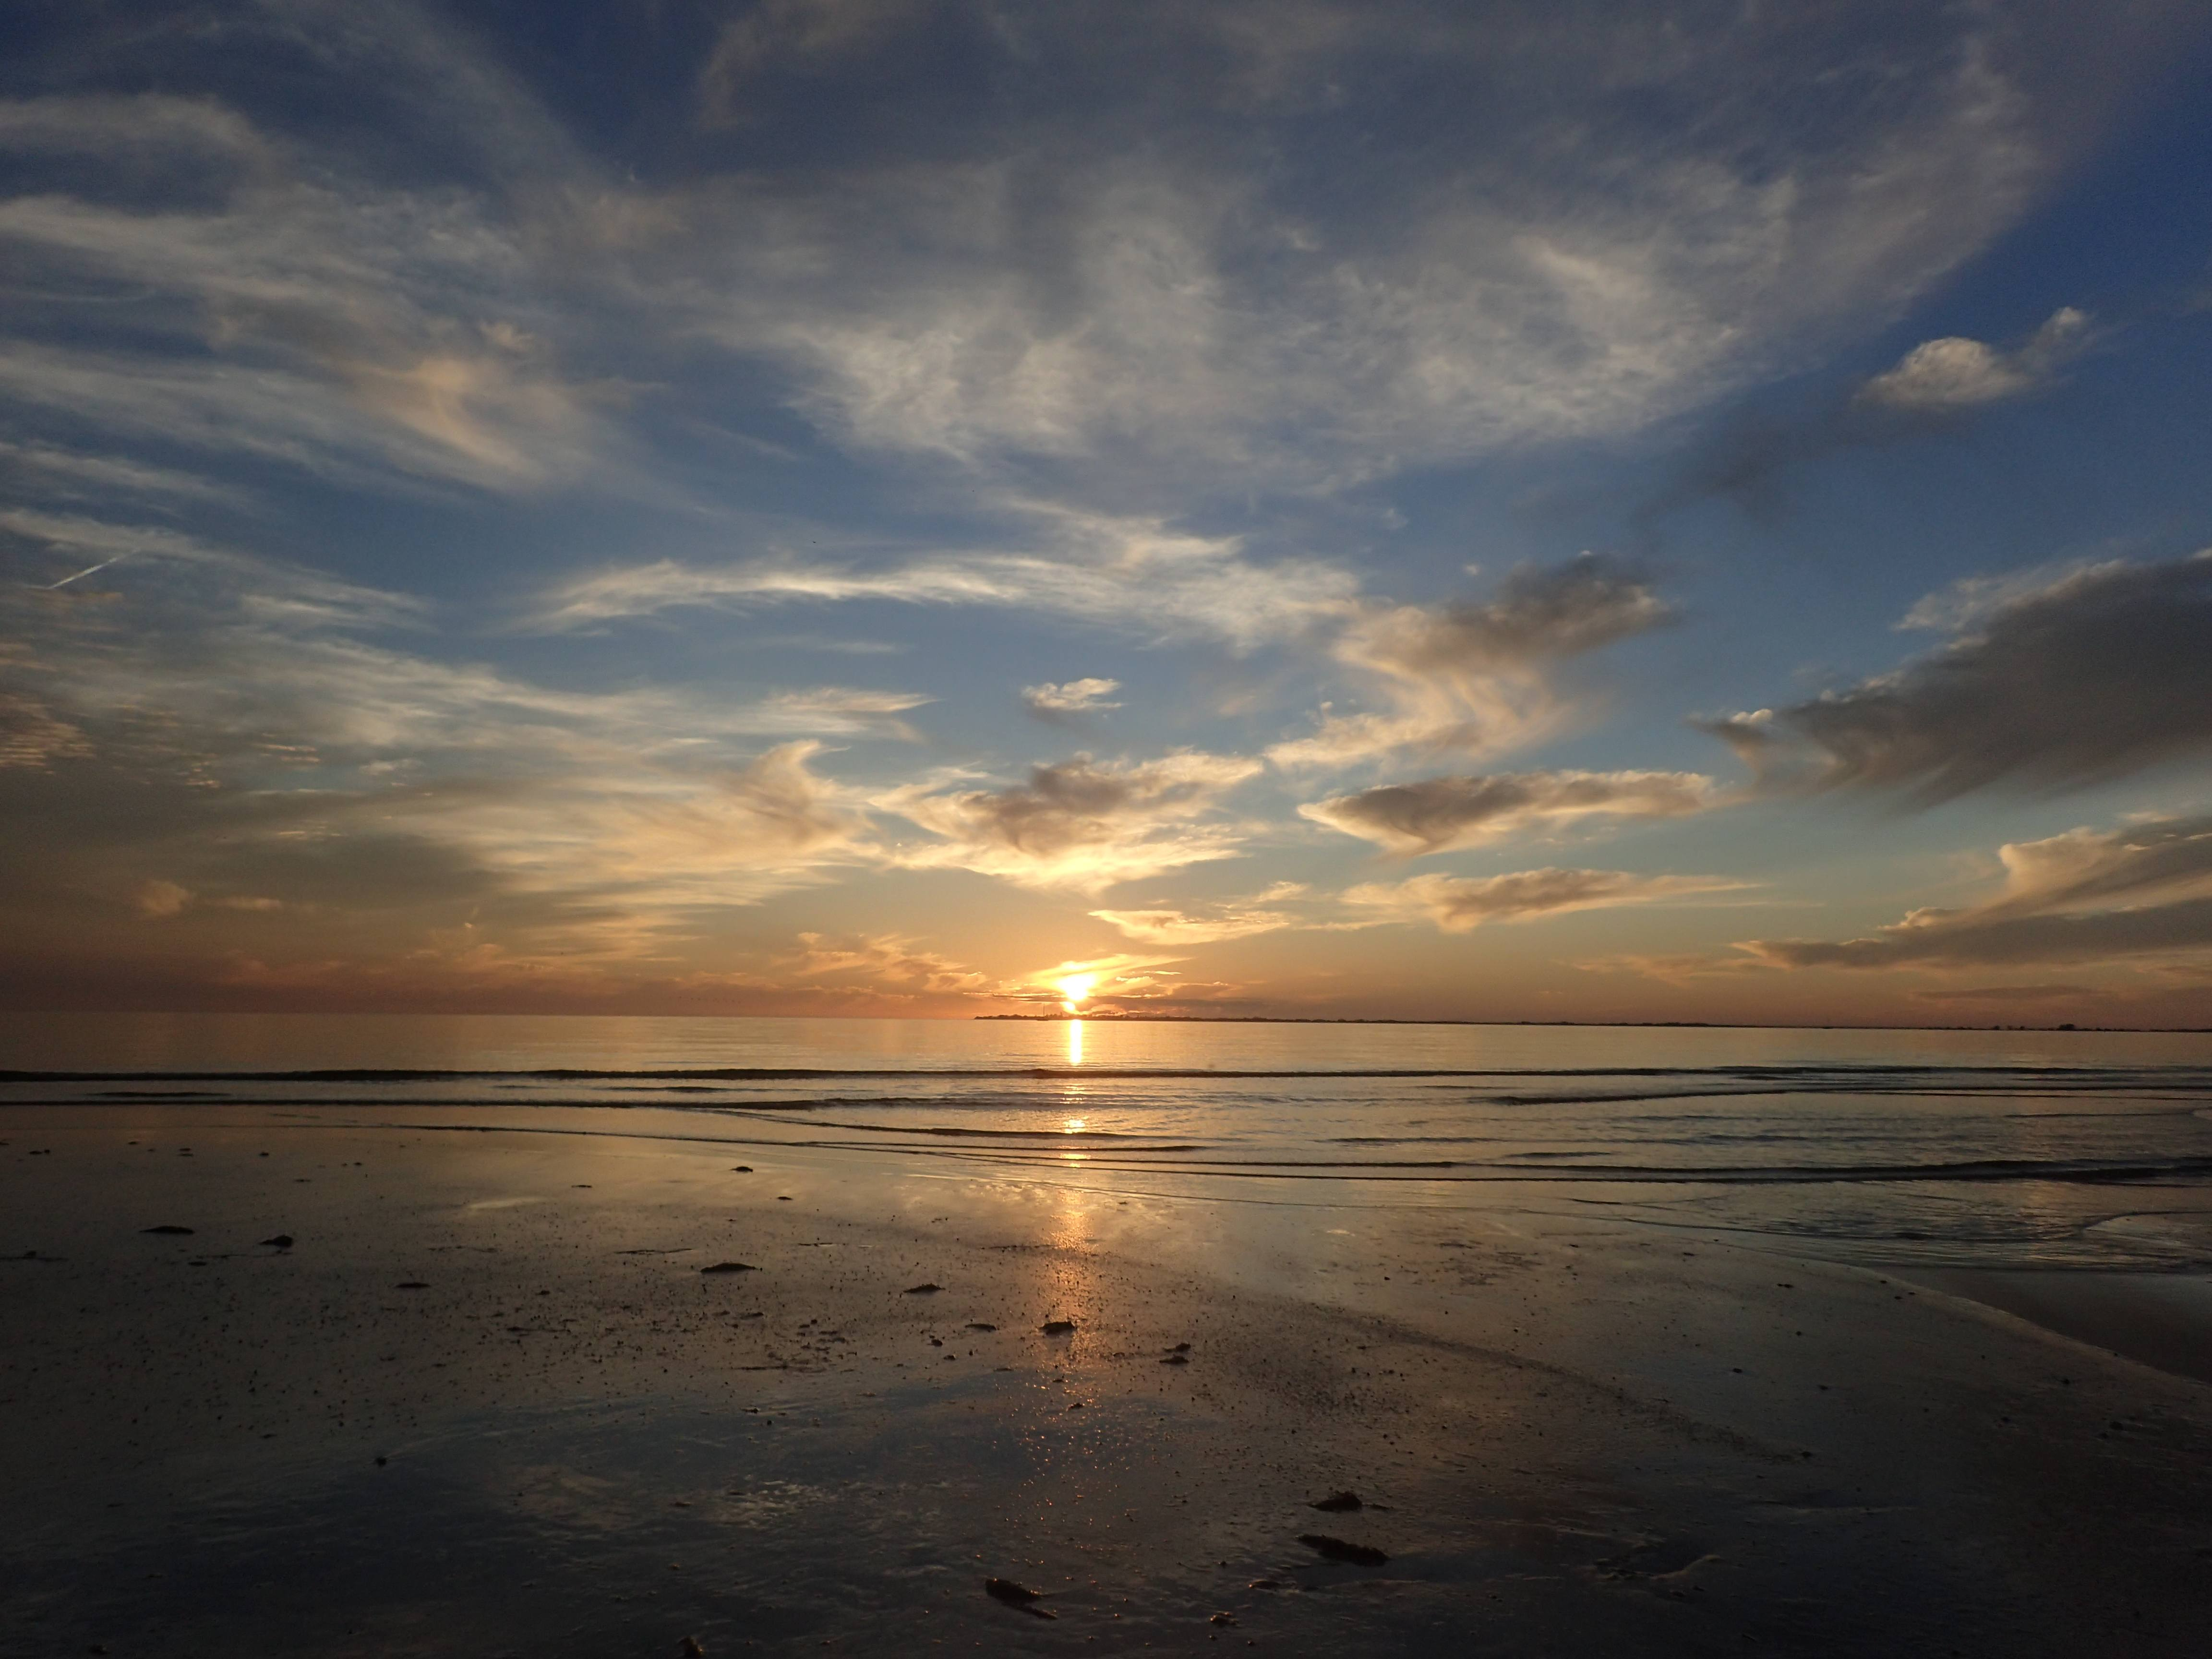 Giving Thanks for the Ocean: The gratitude of the writers